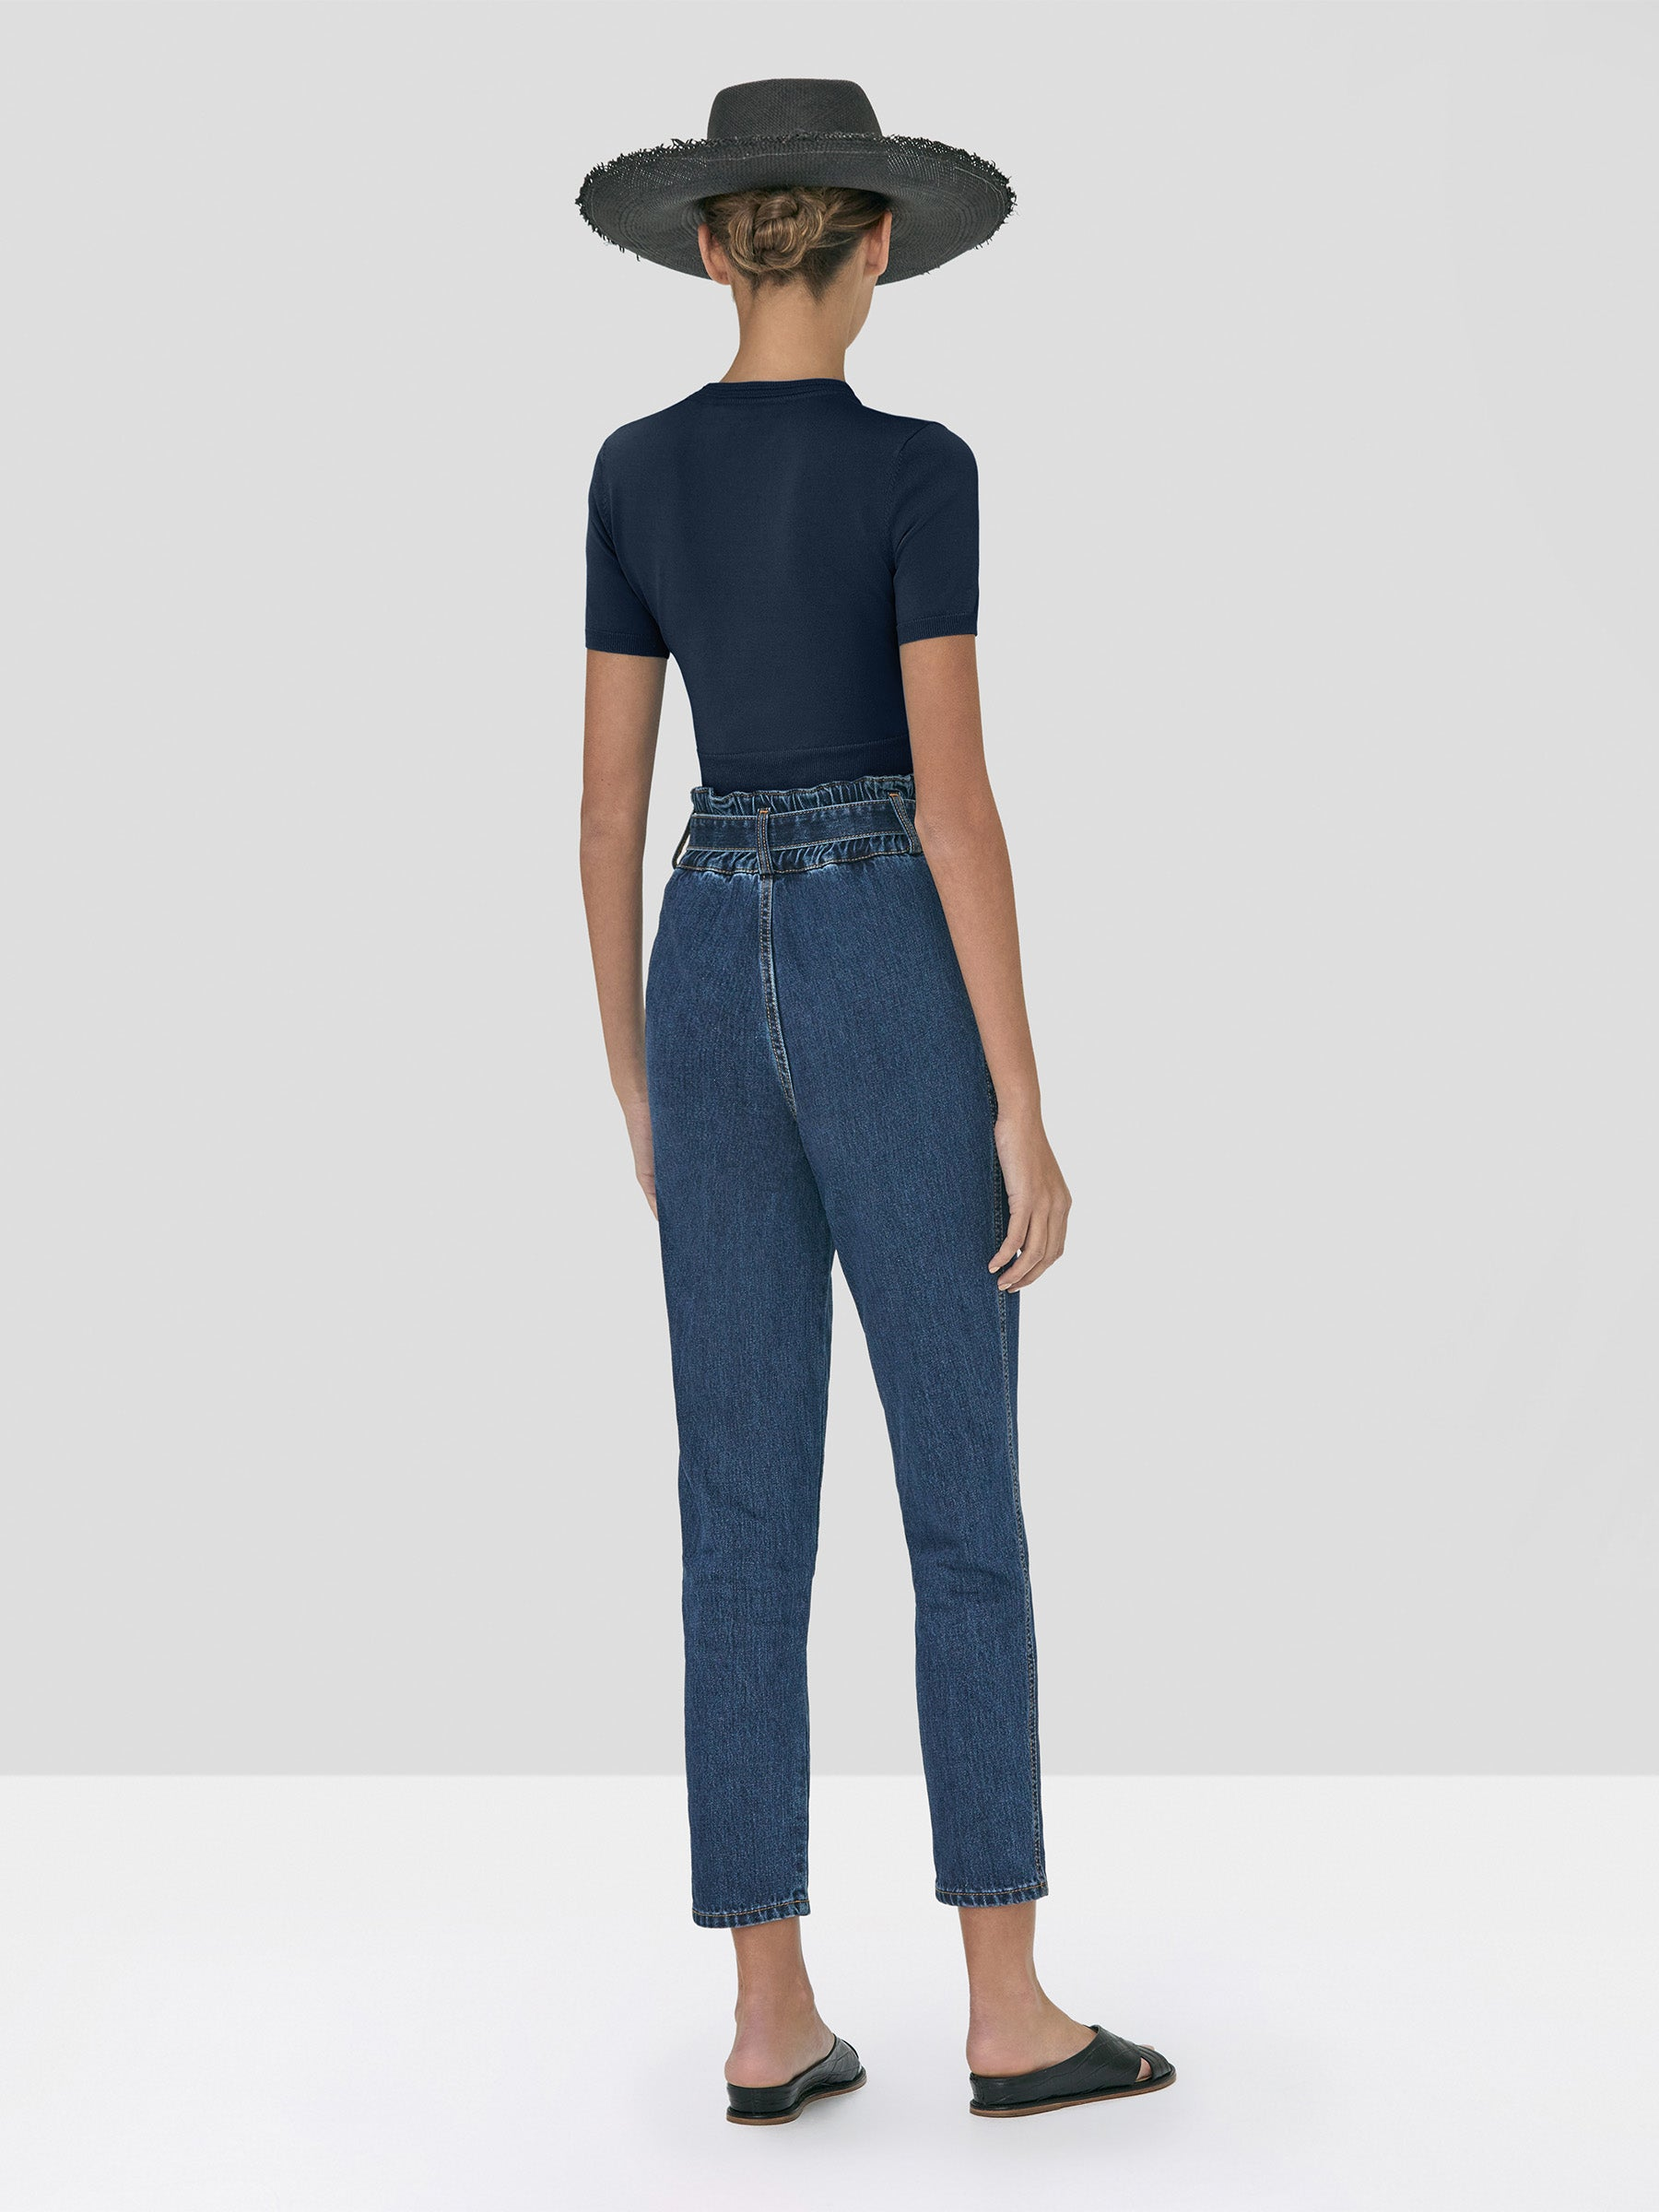 Alexis Finzi Crop Top in Navy and Stannis Denim Pant in Washed Denim from Spring Summer 2020 - Rear View